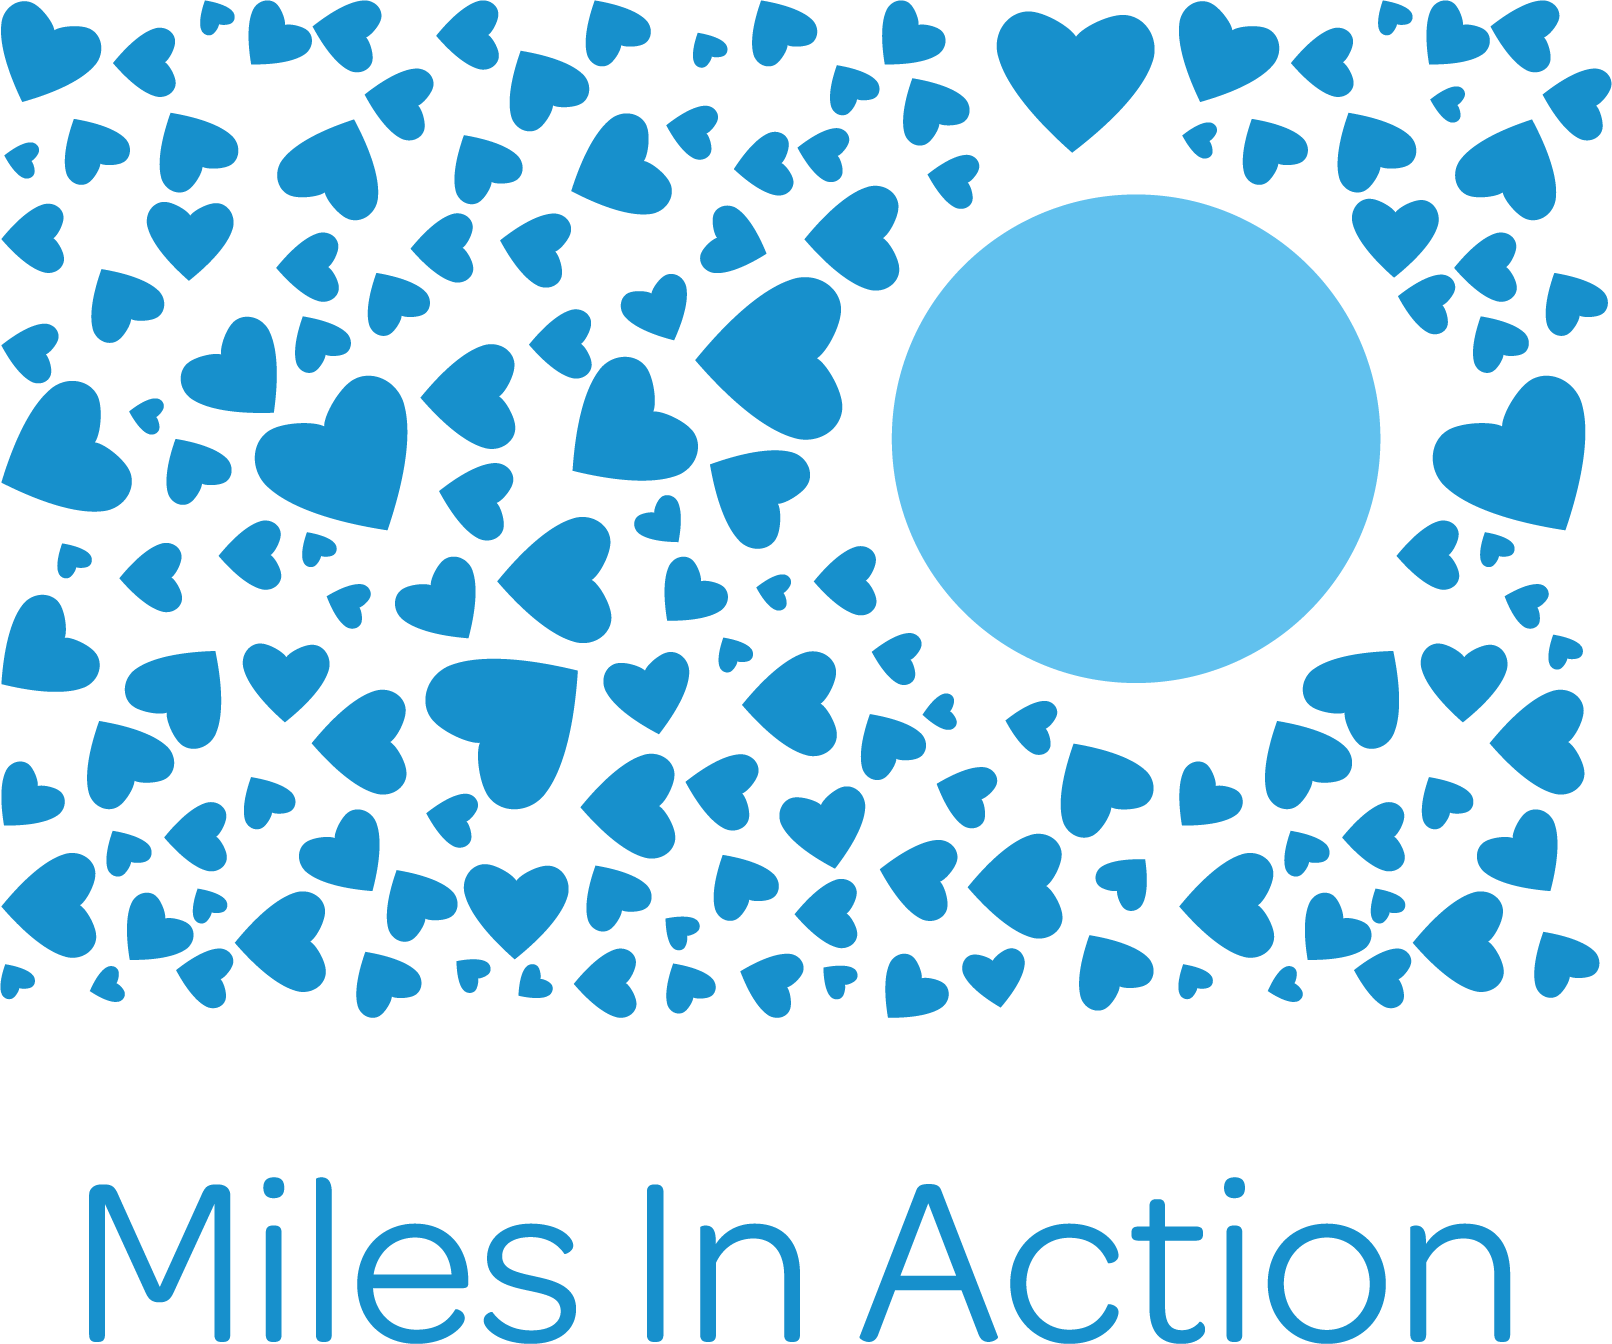 miles_in_action